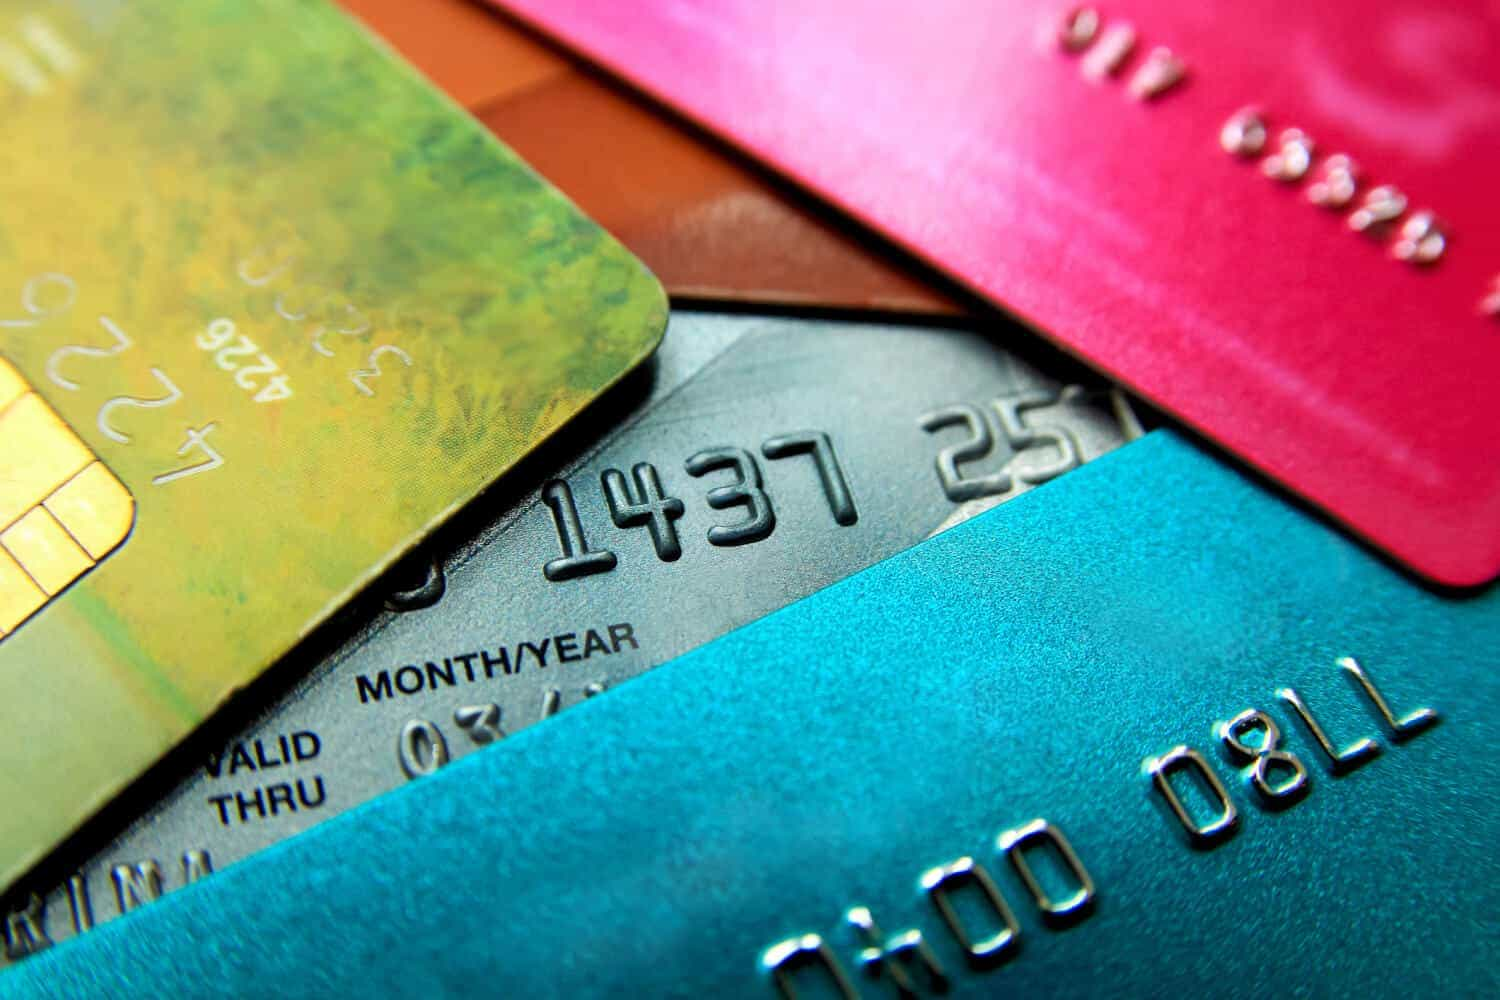 Too many credit cards can be bad for your credit, even if they are as colorful as these